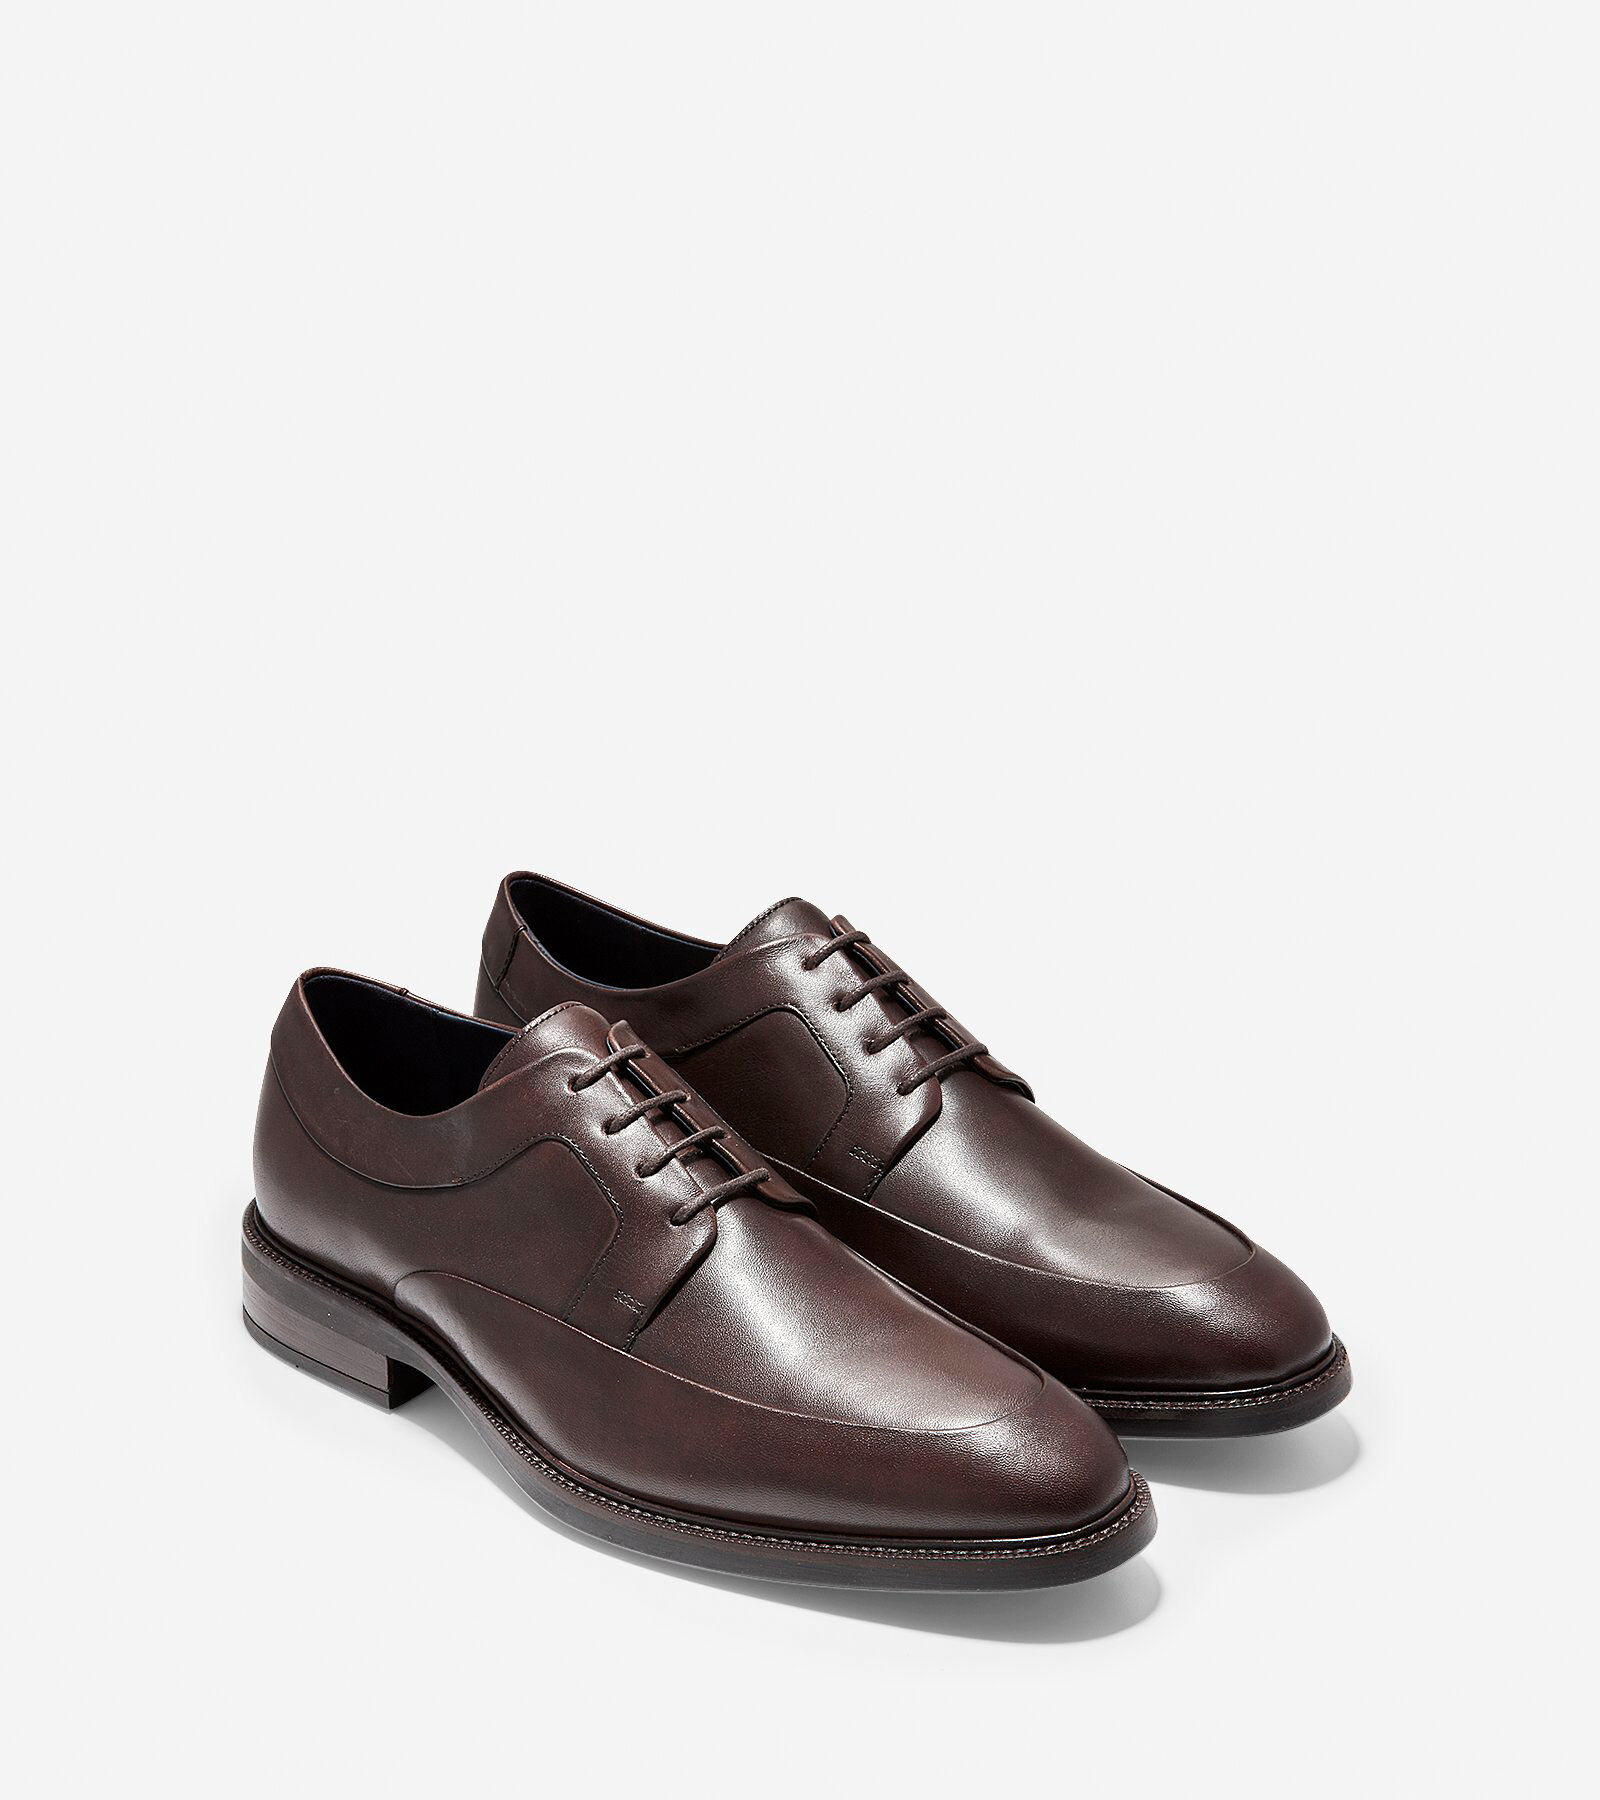 Cole Haan Hartsfield Apron Oxford kqfae